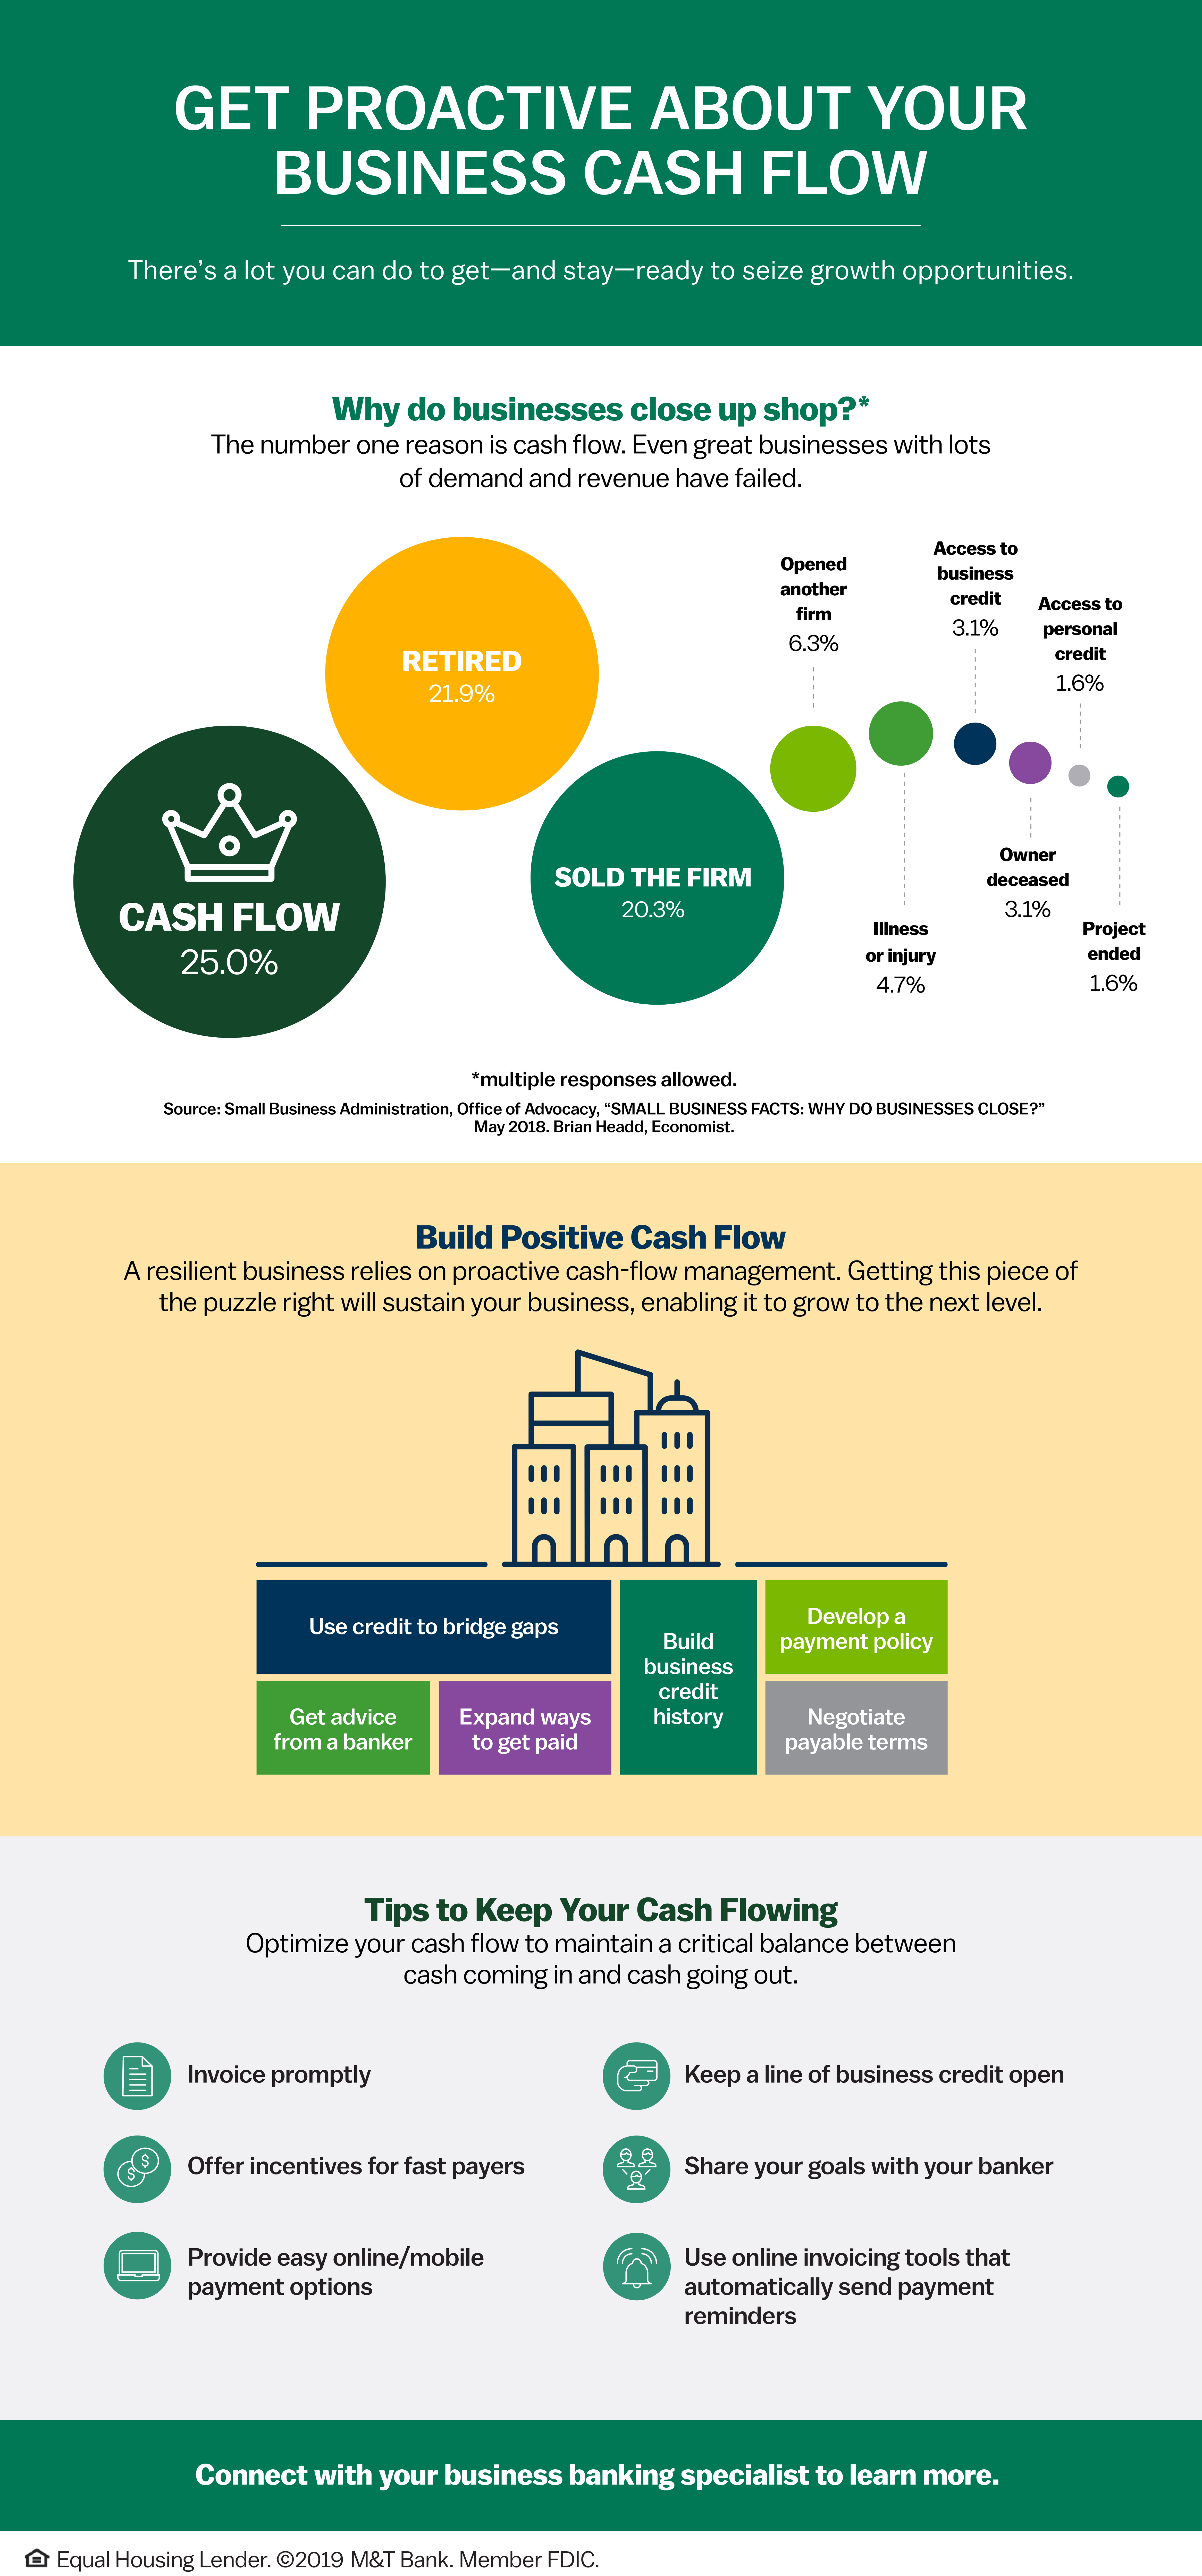 get-proactive-about-your-business-cash-flow.jpg